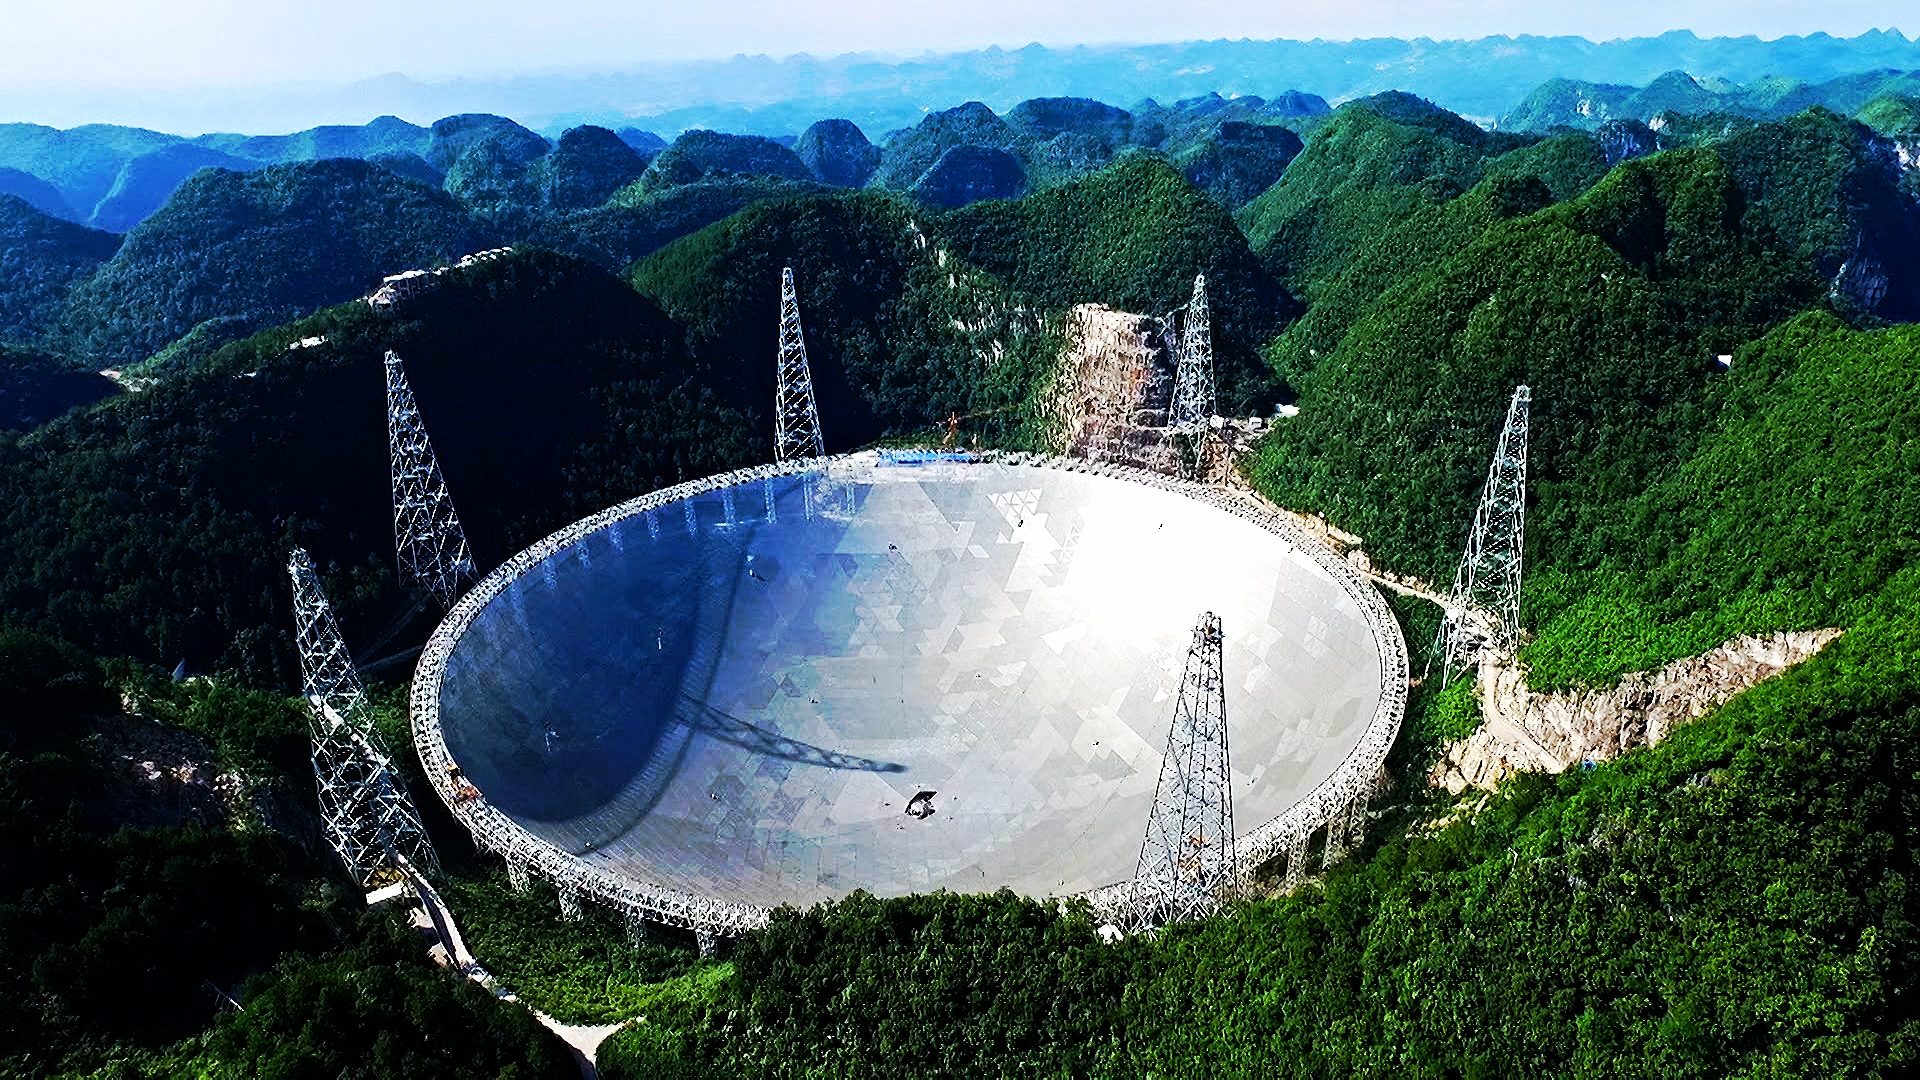 Five hundred meter Aperture Spherical Telescope (五百米口径球面射电望远镜) - China 20